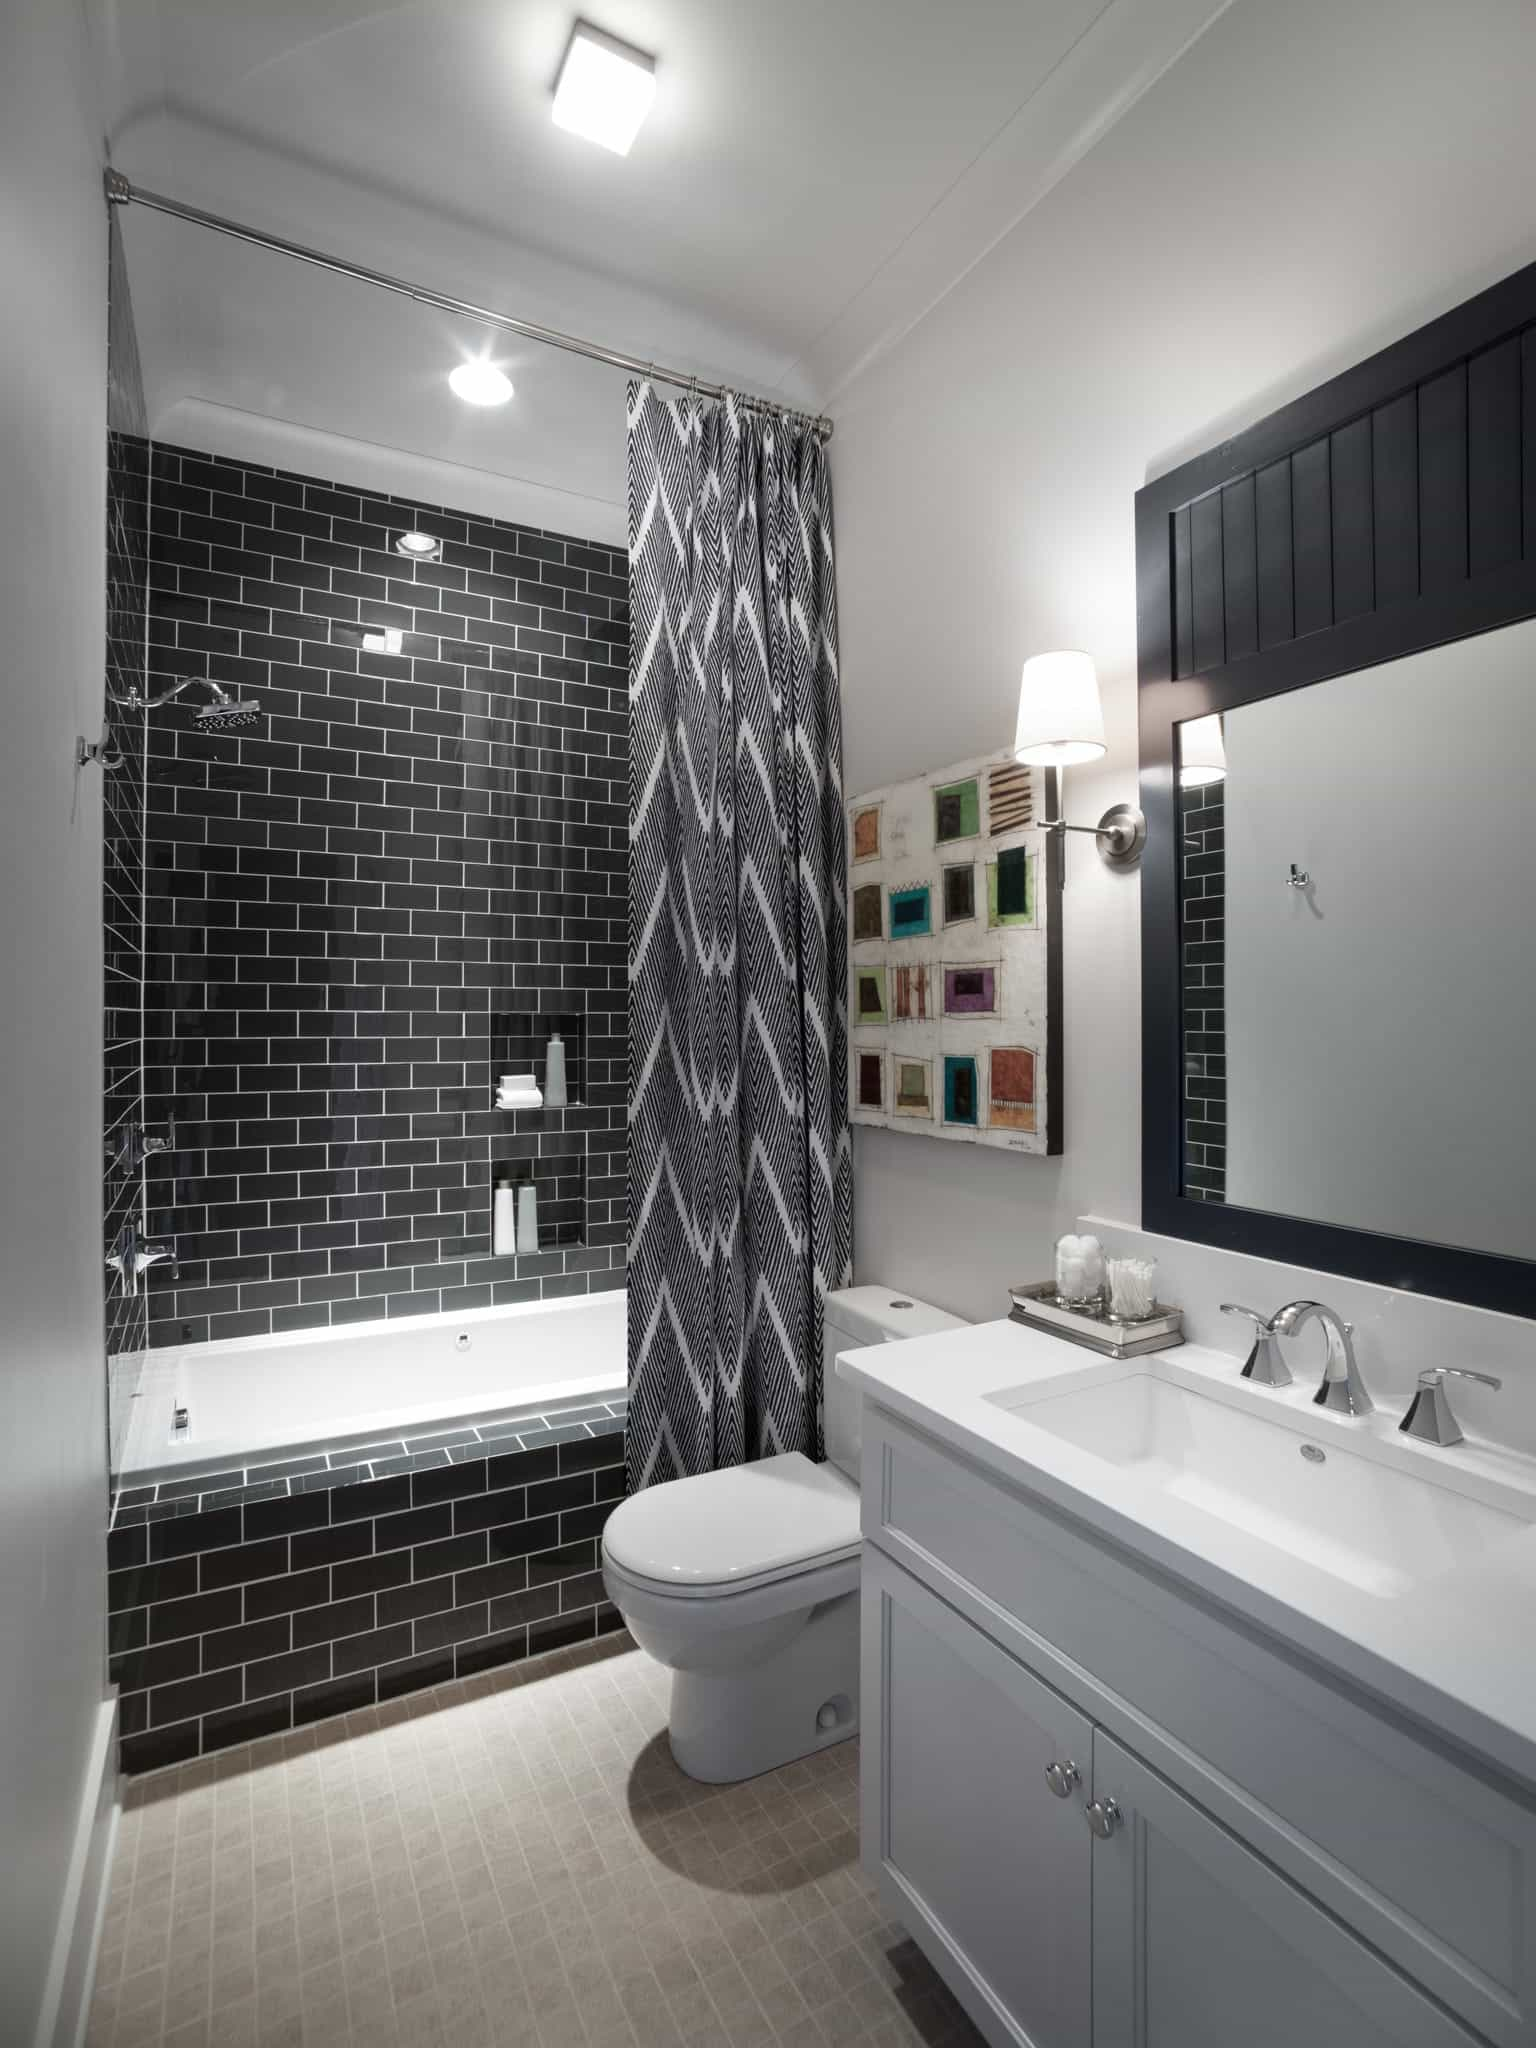 Black And White Modern Bathroom With Chevron Stripe Shower Curtain (View 14 of 14)